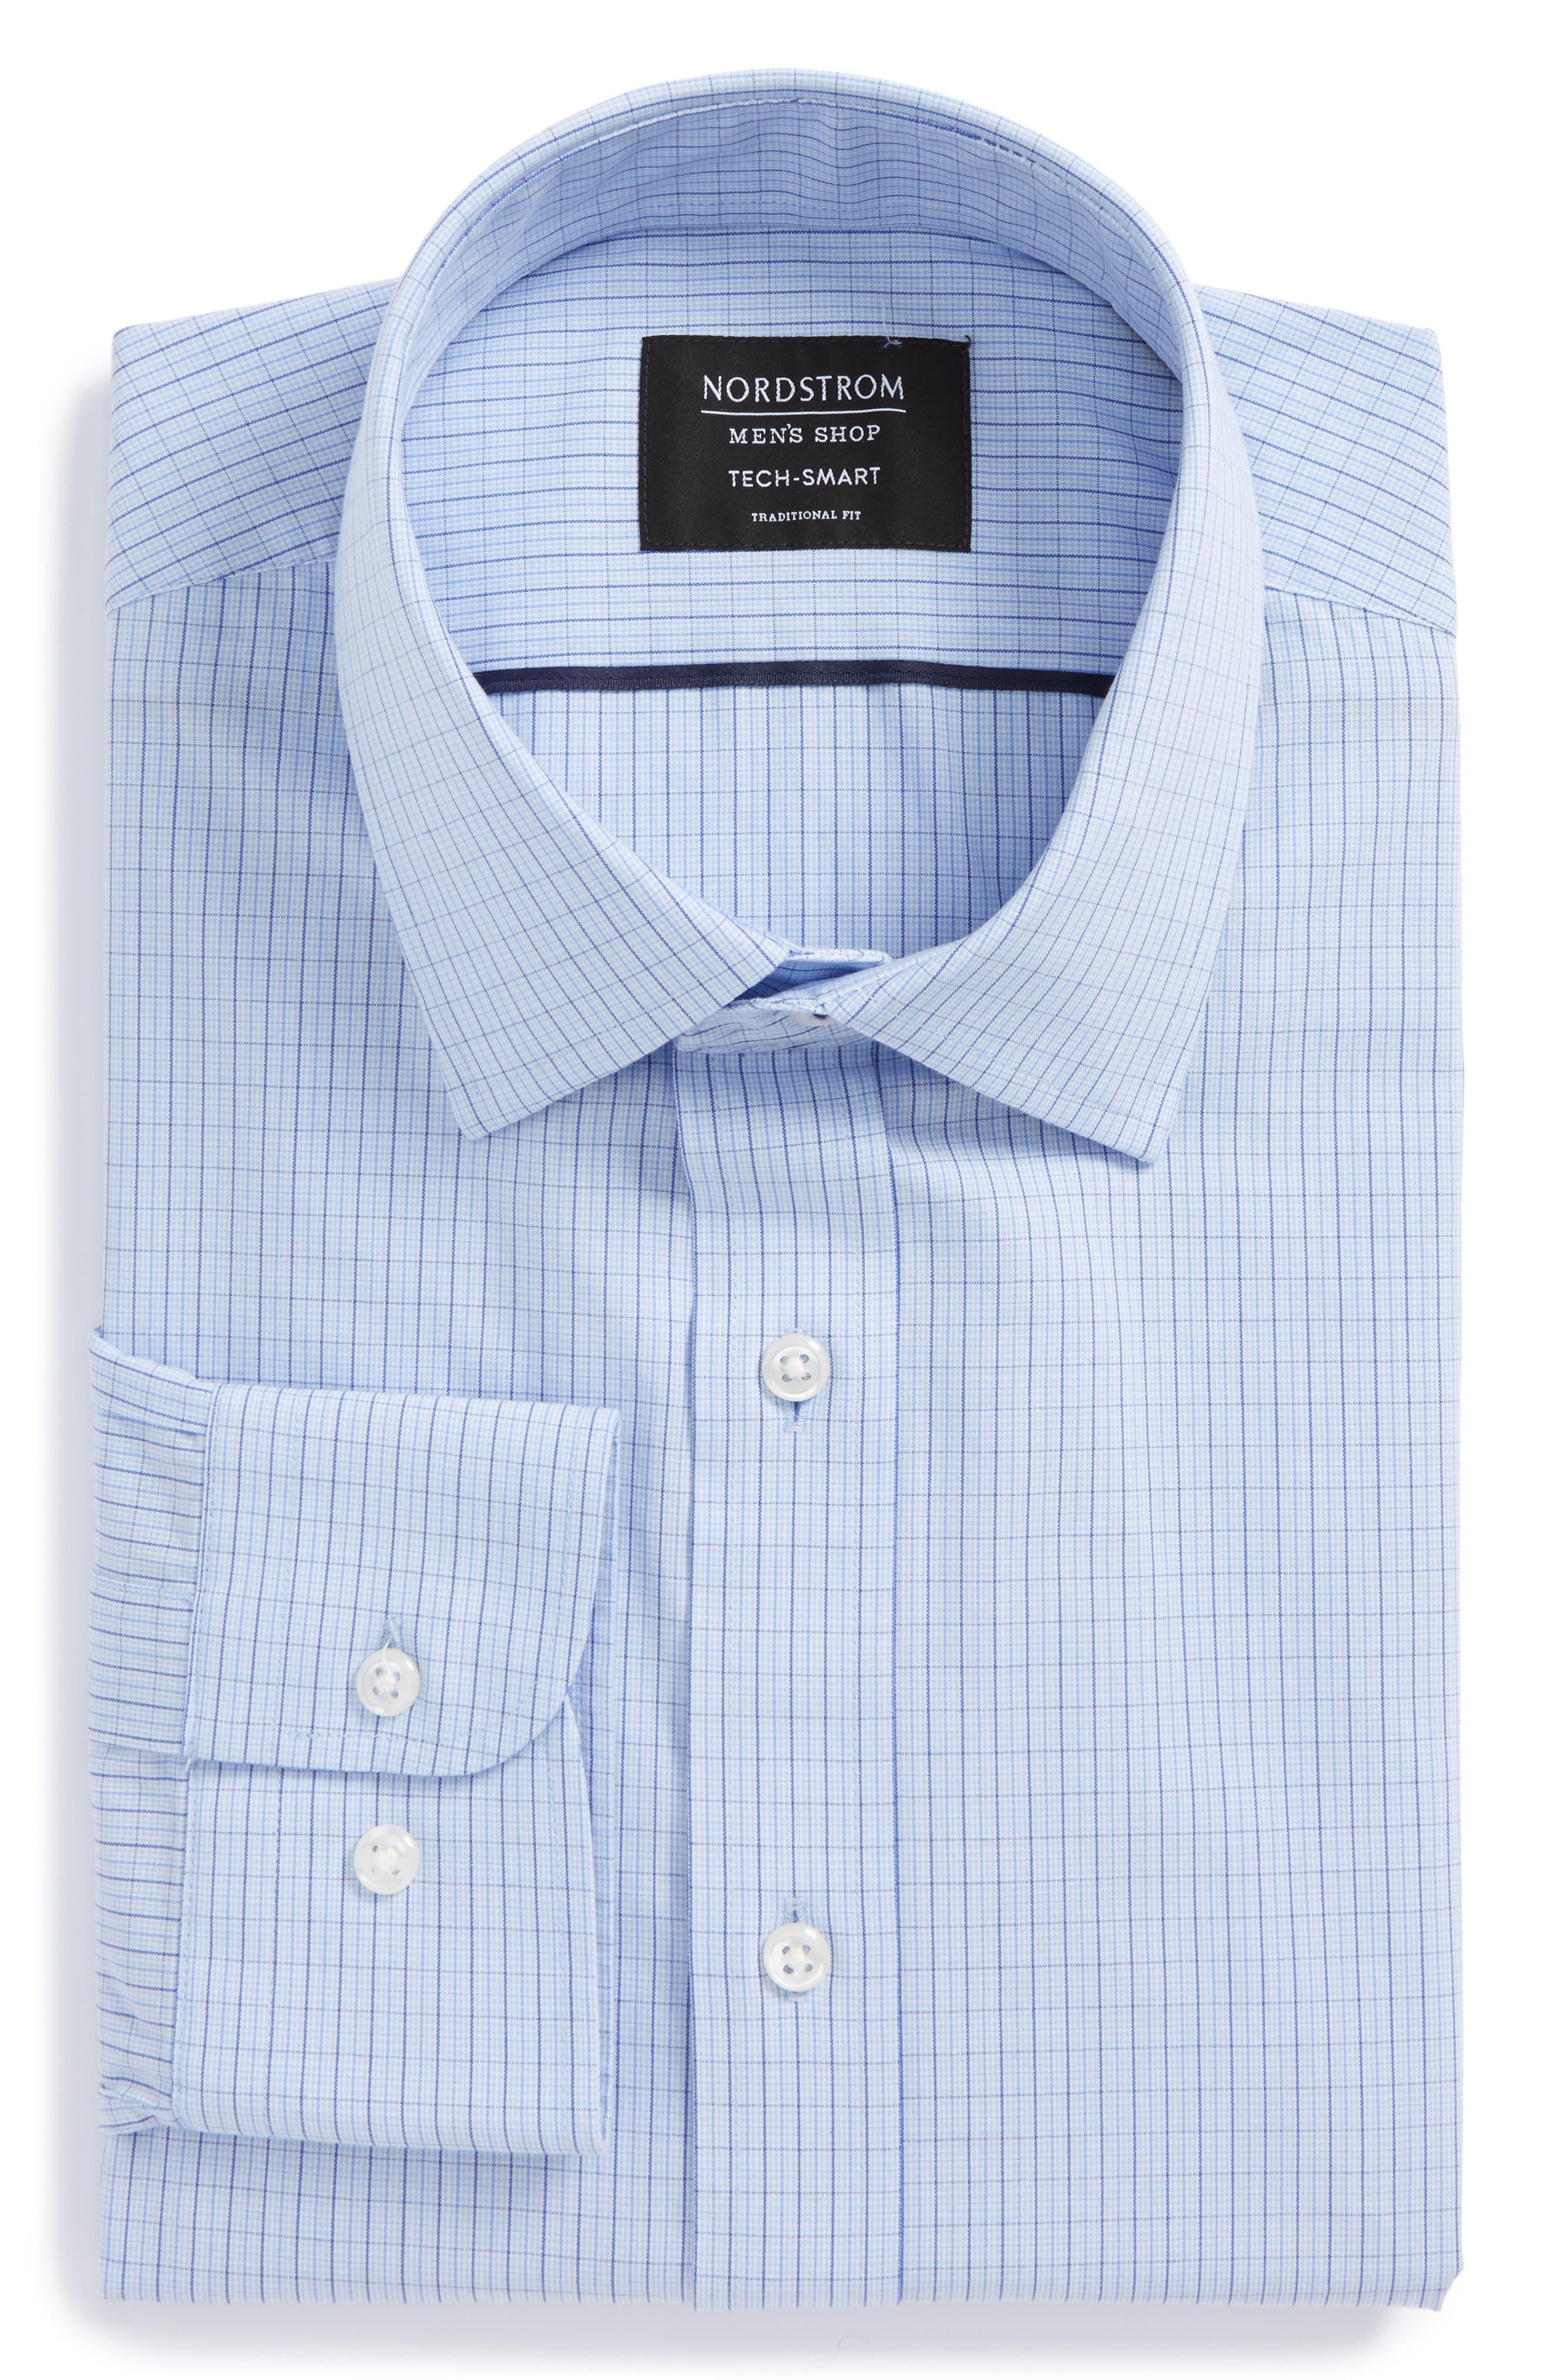 Tech-Smart Traditional Fit Stretch Tattersall Dress Shirt,                             Alternate thumbnail 3, color,                             420